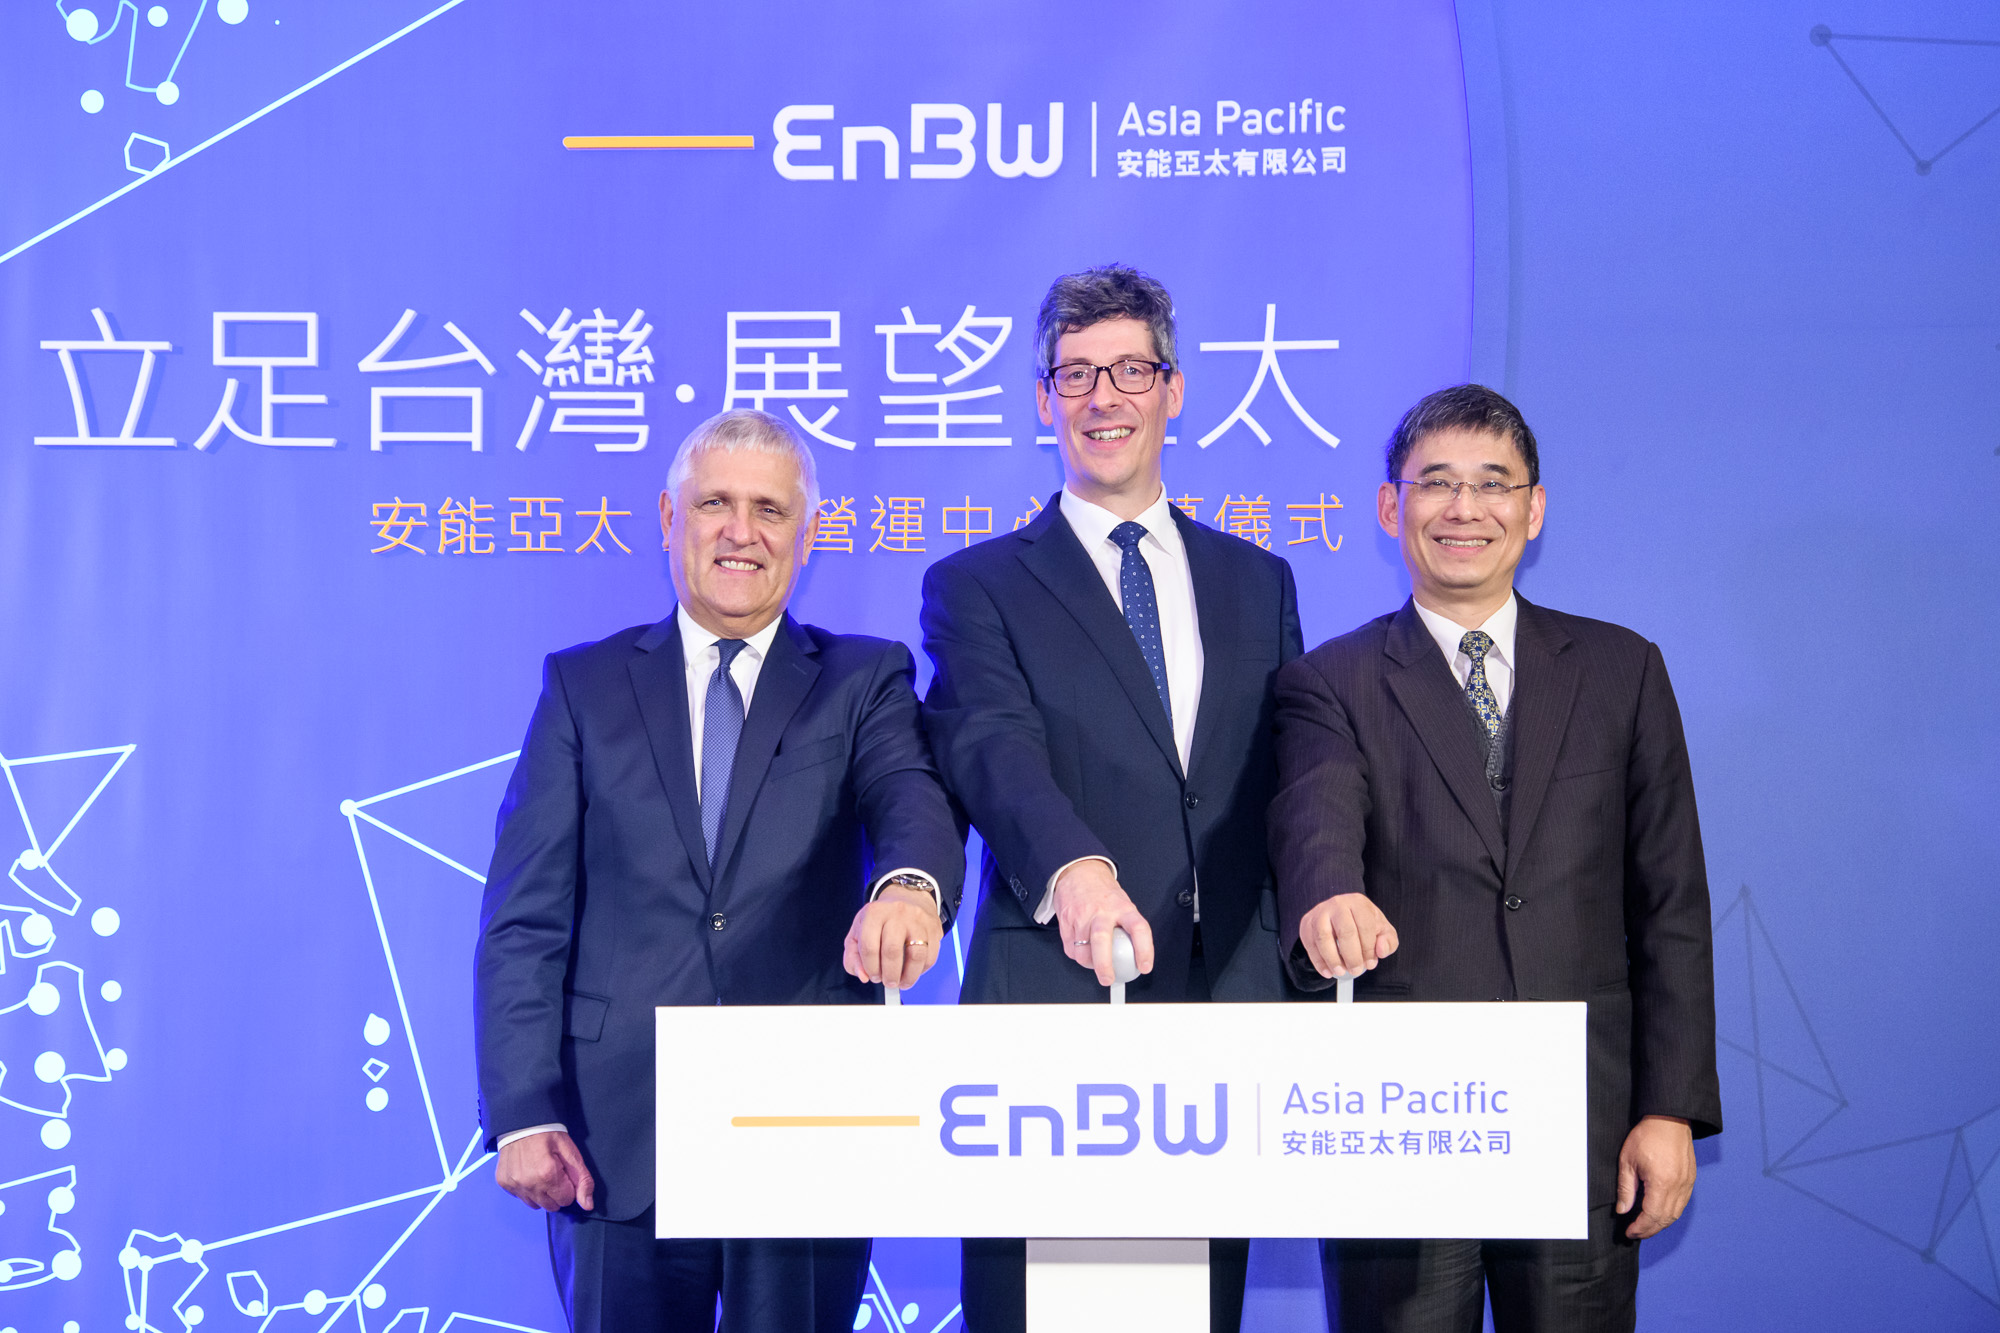 EnBW opens own representative office in Taiwan. From left: Dr. Hans-Josef Zimmer, Chief Technical Officer of EnBW , Markus Wild, General Manager of EnBW Asia Pacific und Chun-Li Lee, Deputy Director General of Bureau of Energy in Taiwan